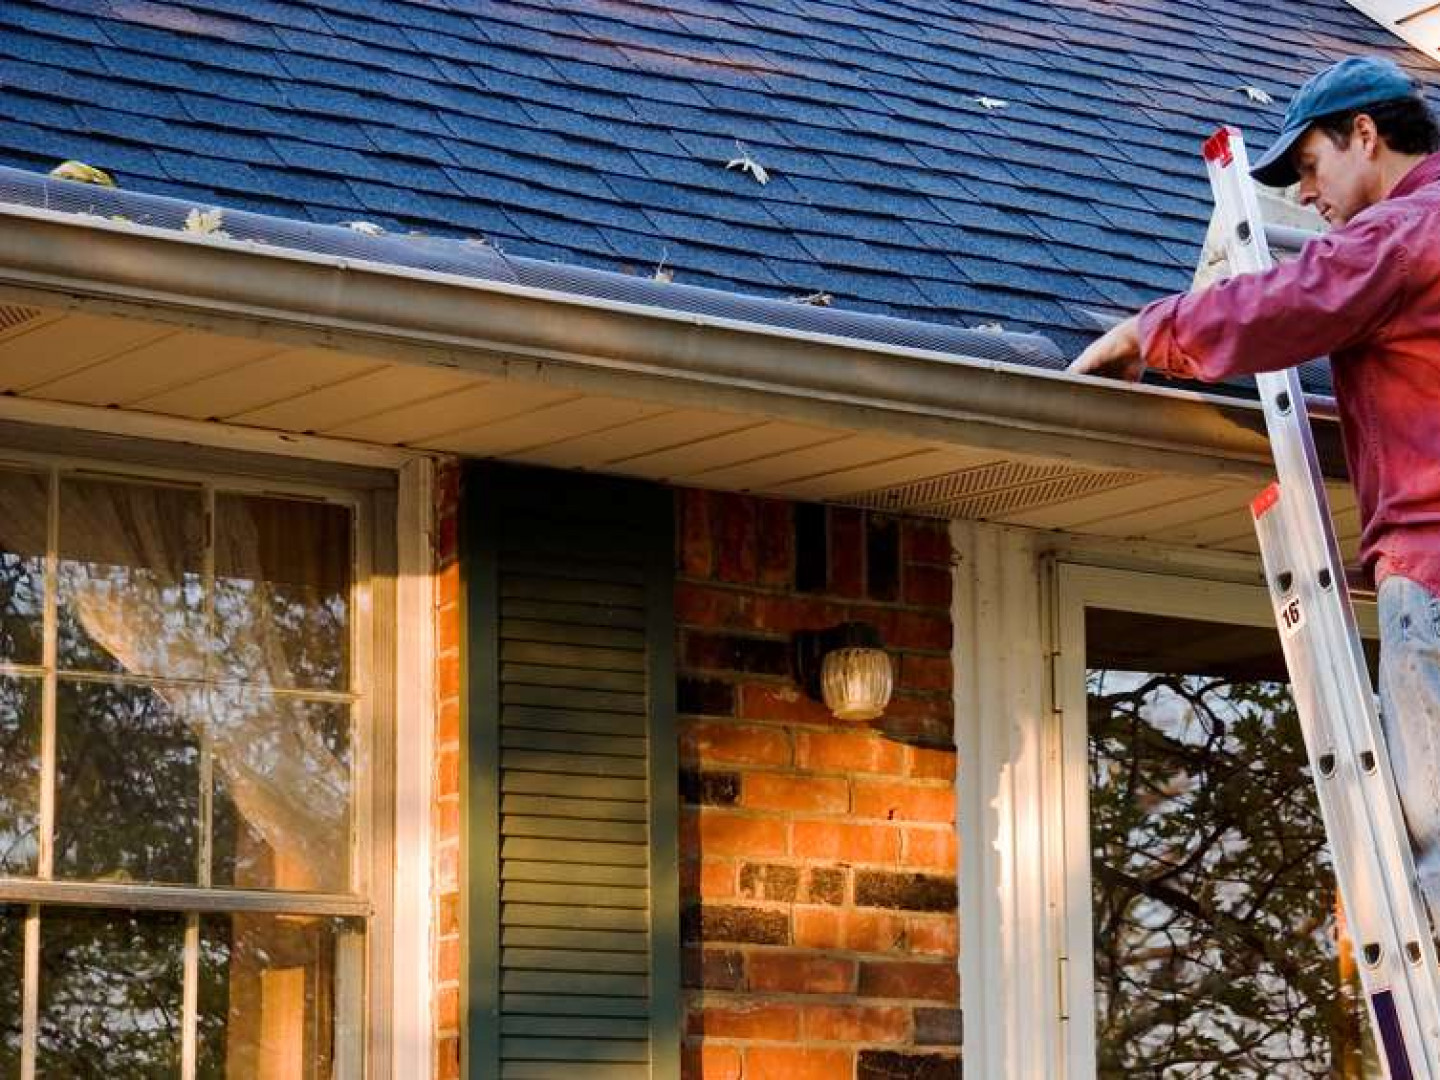 5 signs you probably need gutter repair services